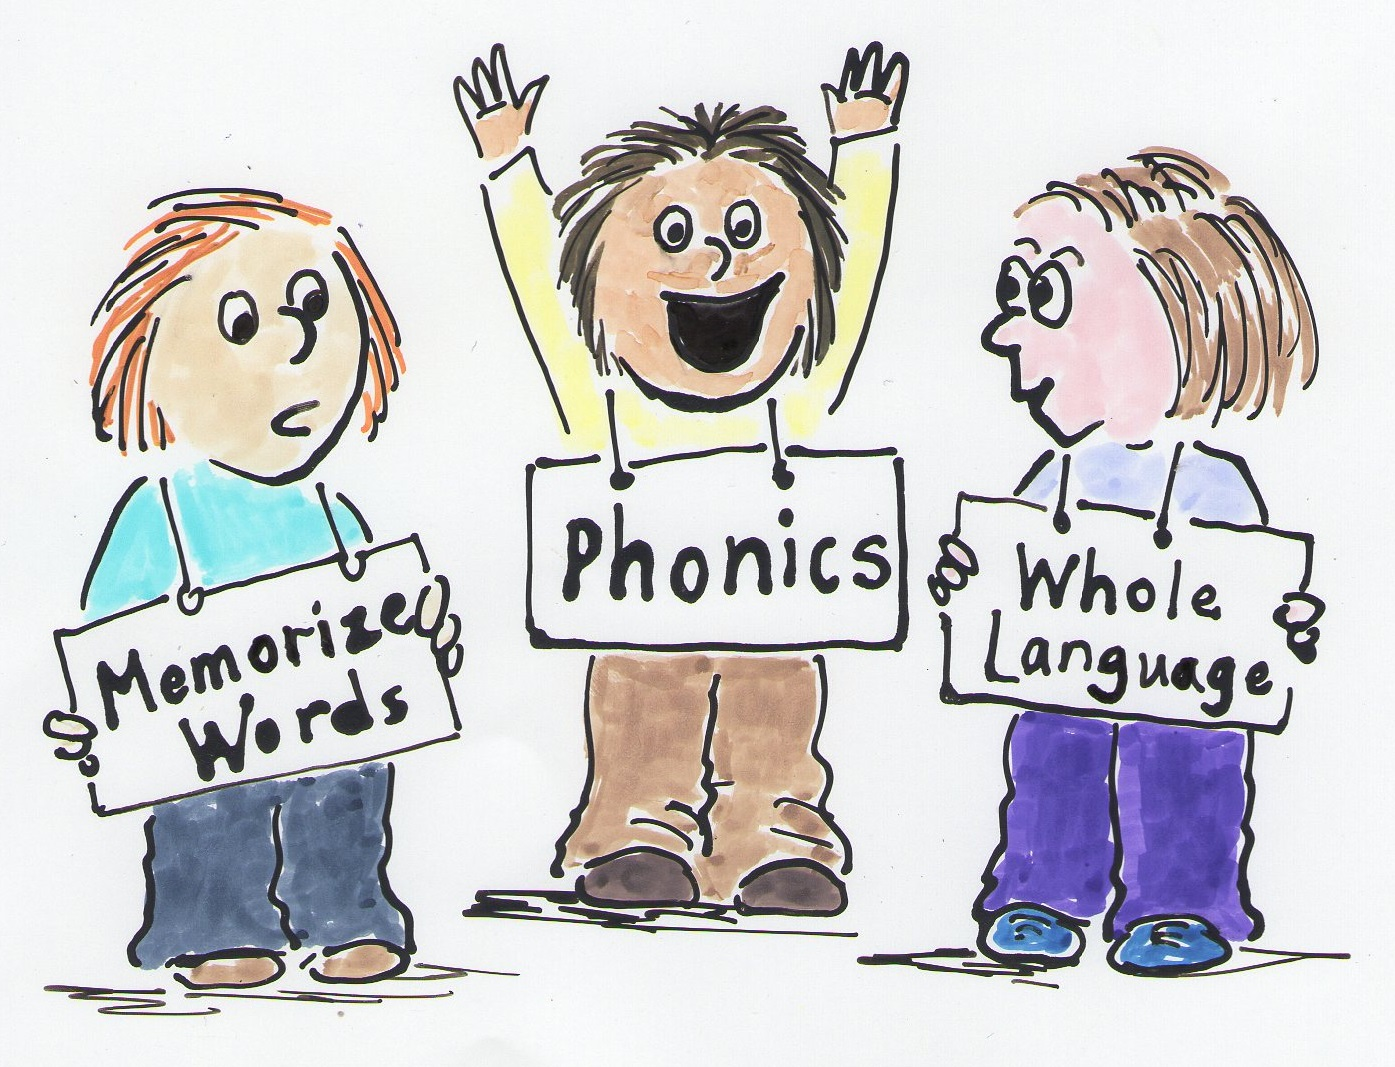 why teach phonics?